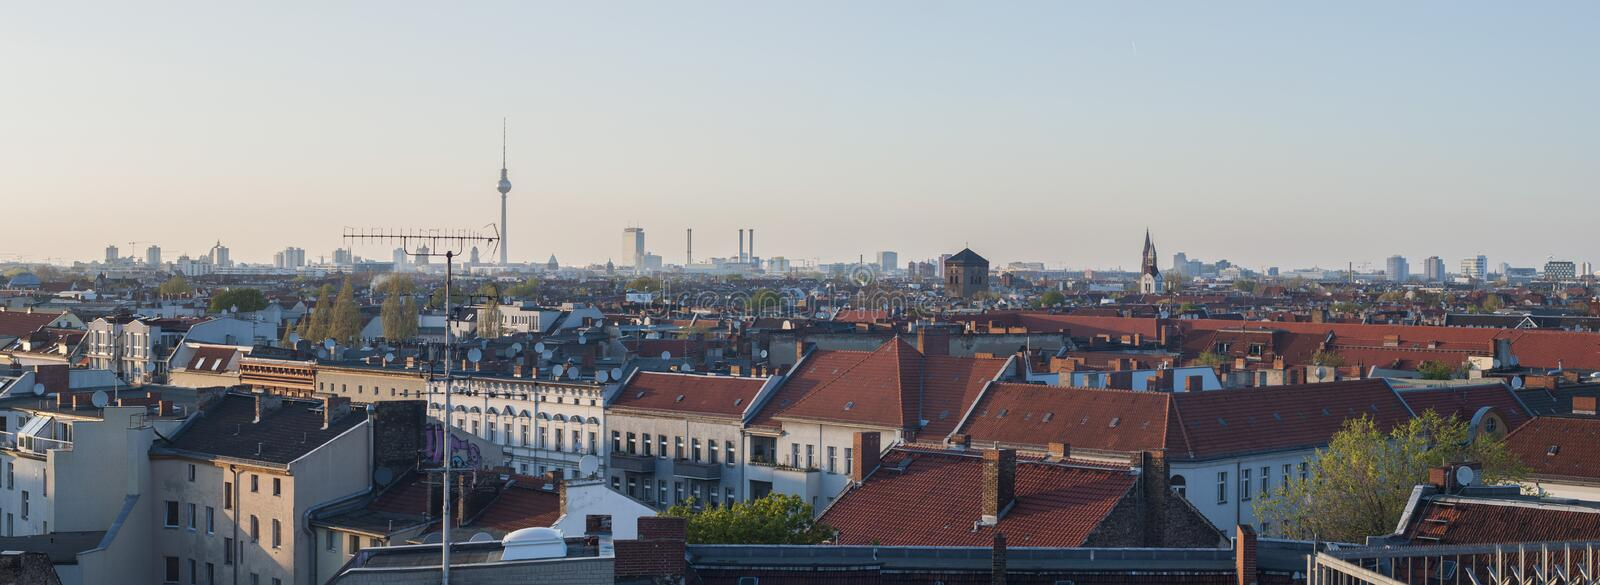 Panoramic photo: Berlin. Beautiful panoramic photo of Berlin at dusk, taken from a rooftop stock images